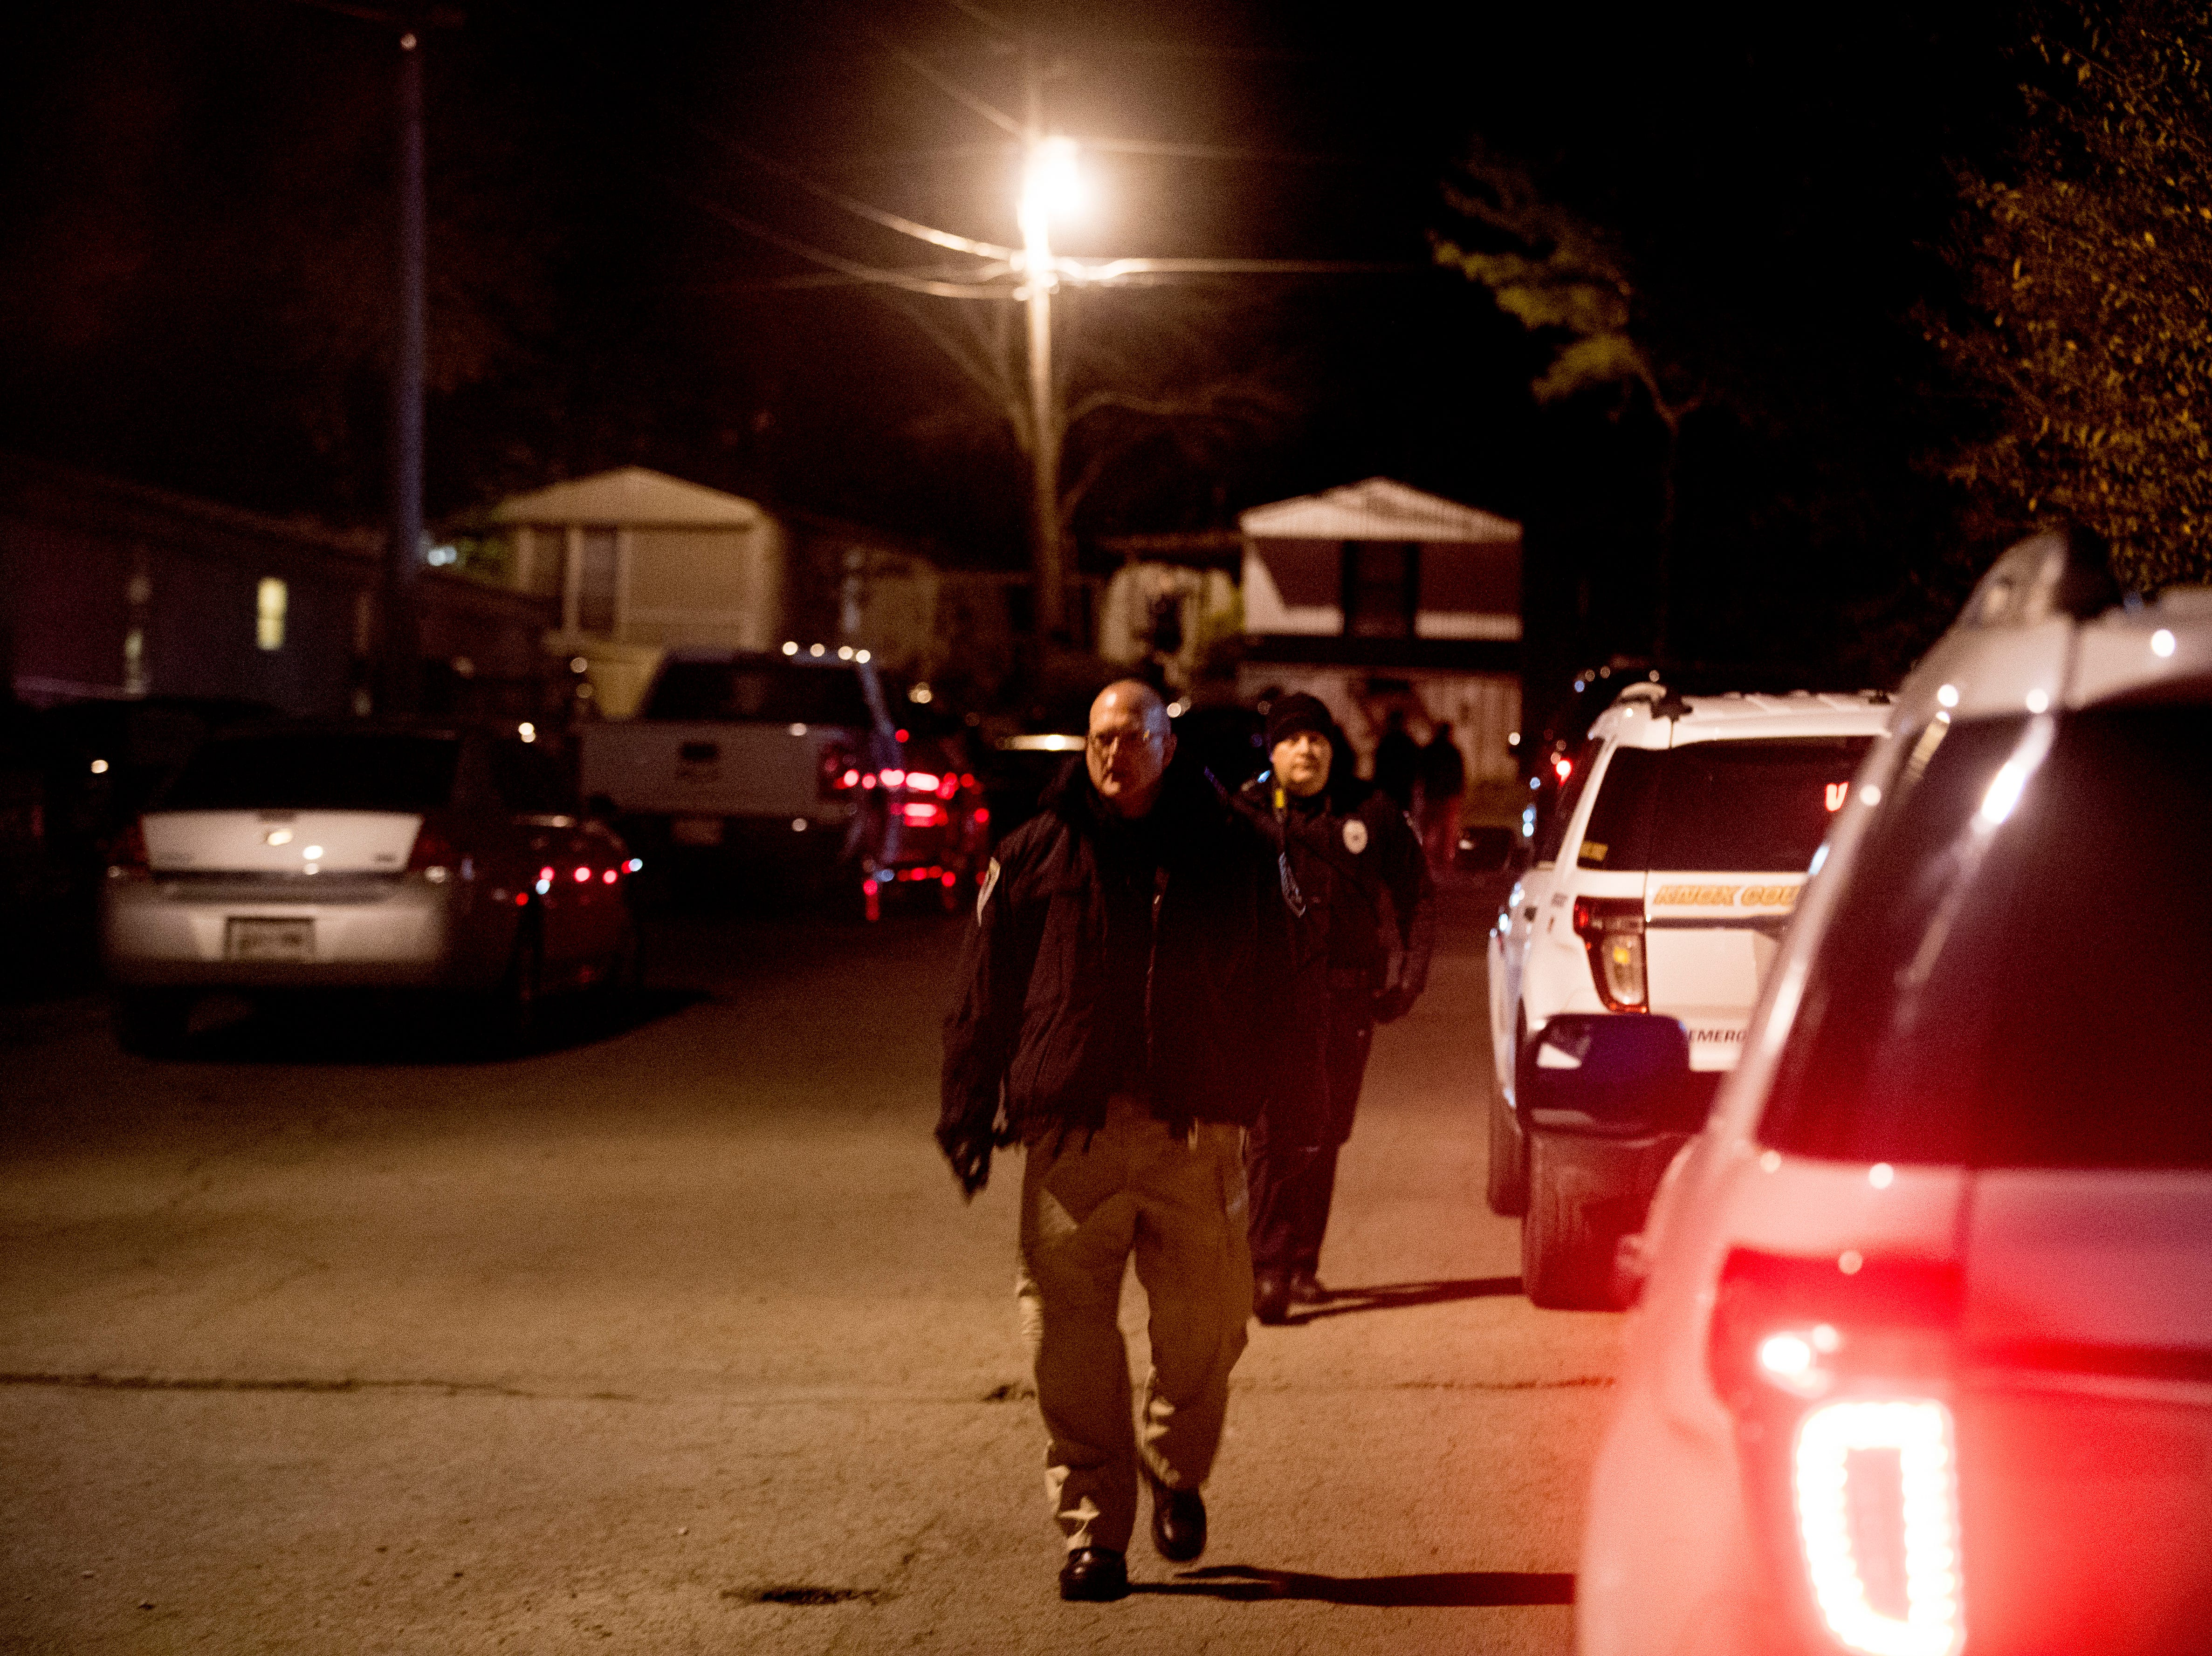 An investigator walks at the scene of a shooting on Forest Edge Way in Knoxville, Tennessee on Saturday, November 10, 2018. One victim was confirmed dead at the scene and a second injured.